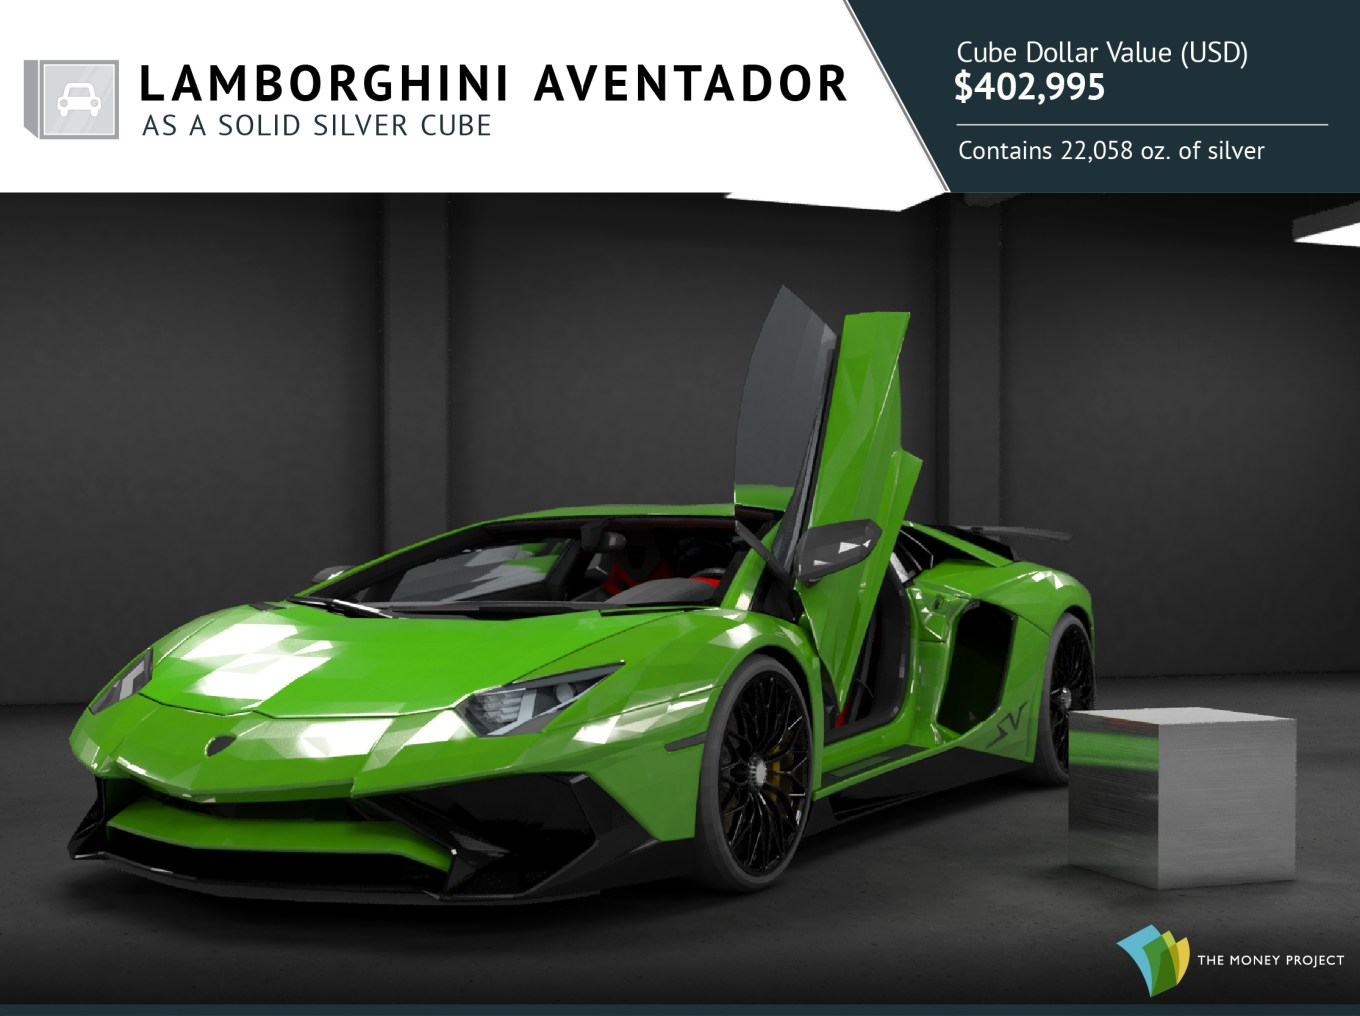 A Lamborghini's value as a silver cube